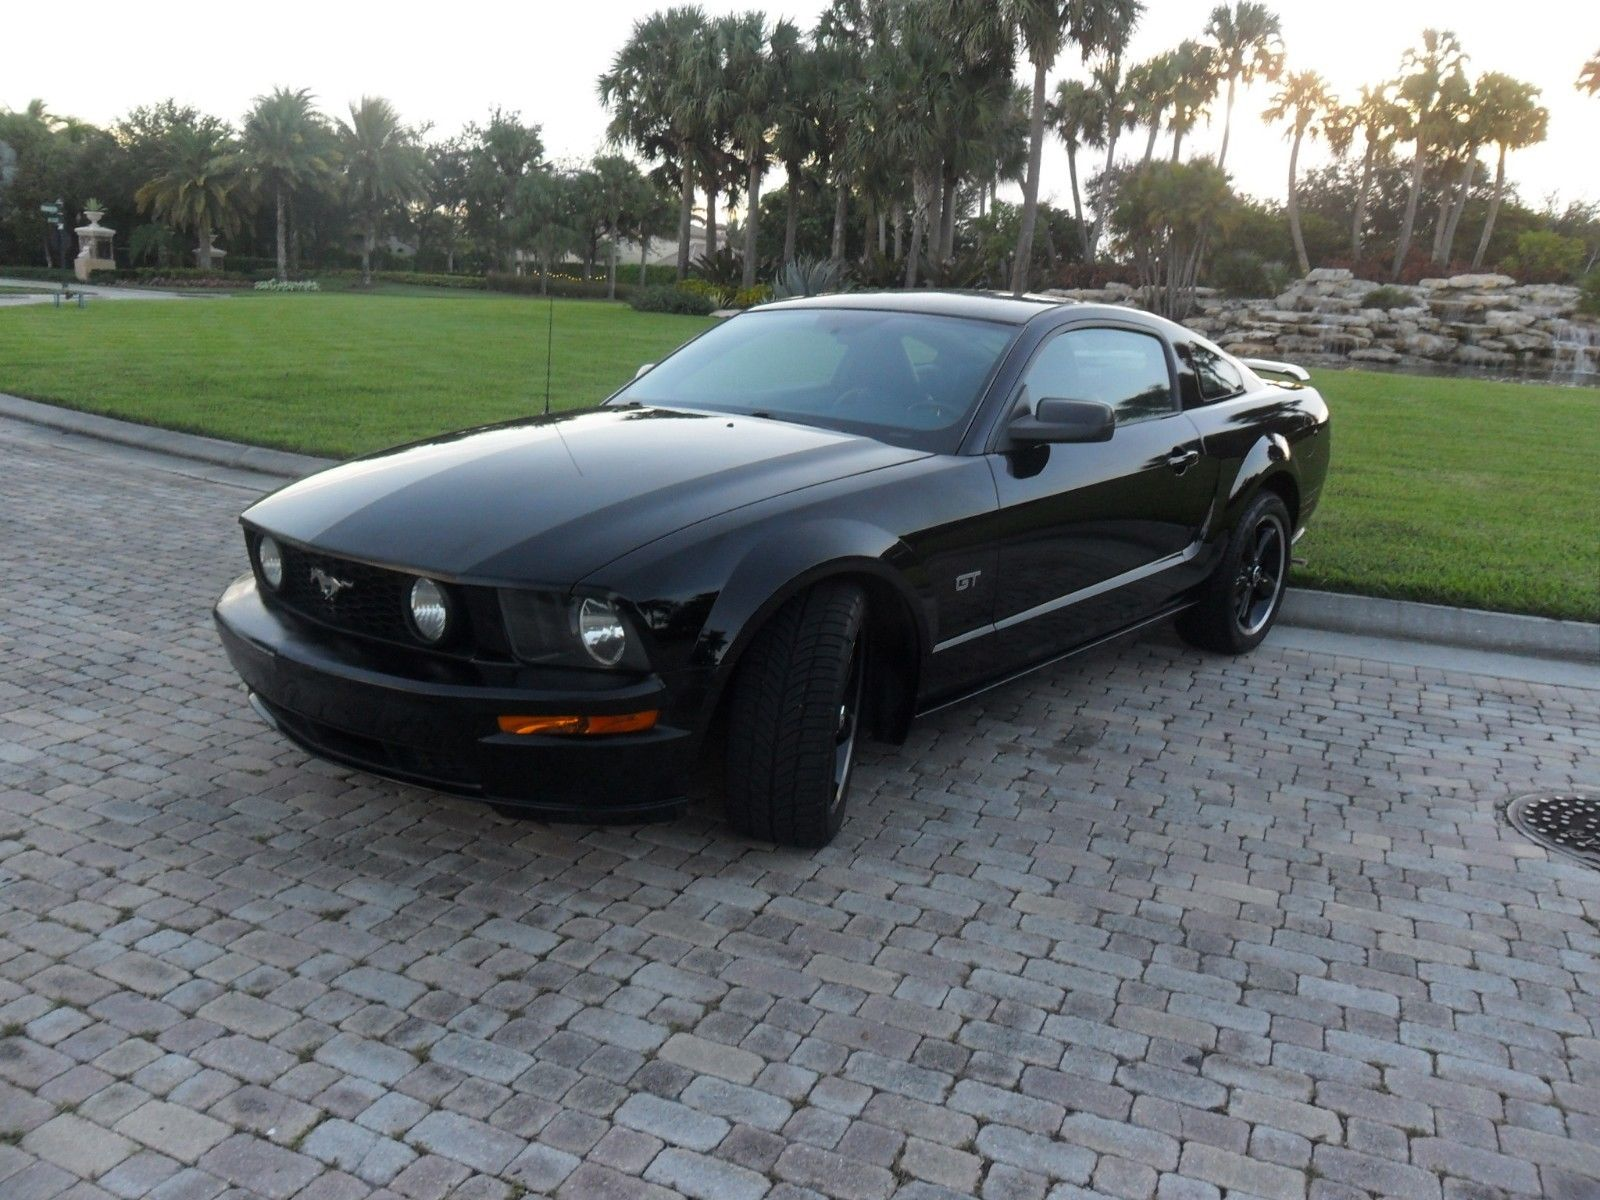 Awesome 2007 Ford Mustang GT PREMIUM MUSTANG GT PREMIUM 5 SPEED ONE OWNER  ACCIDENT FREE HISTORY BLACK BEAUTY 2018-2019